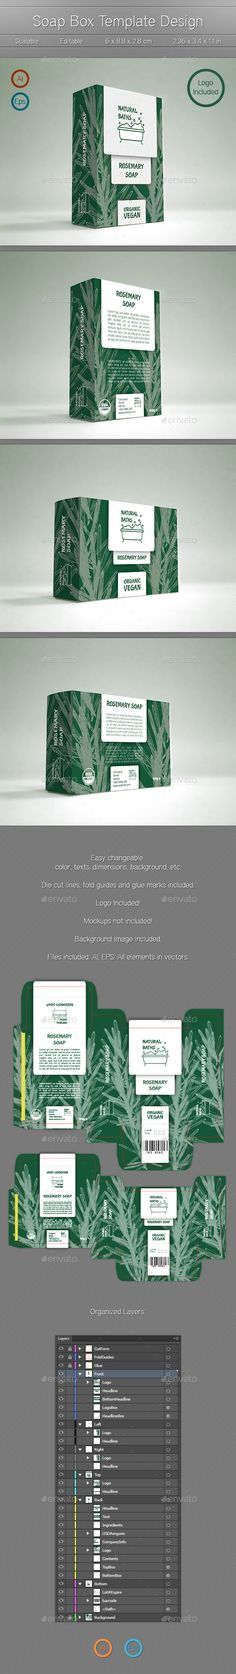 Label Templates Label templates, Print templates and Template - label design templates